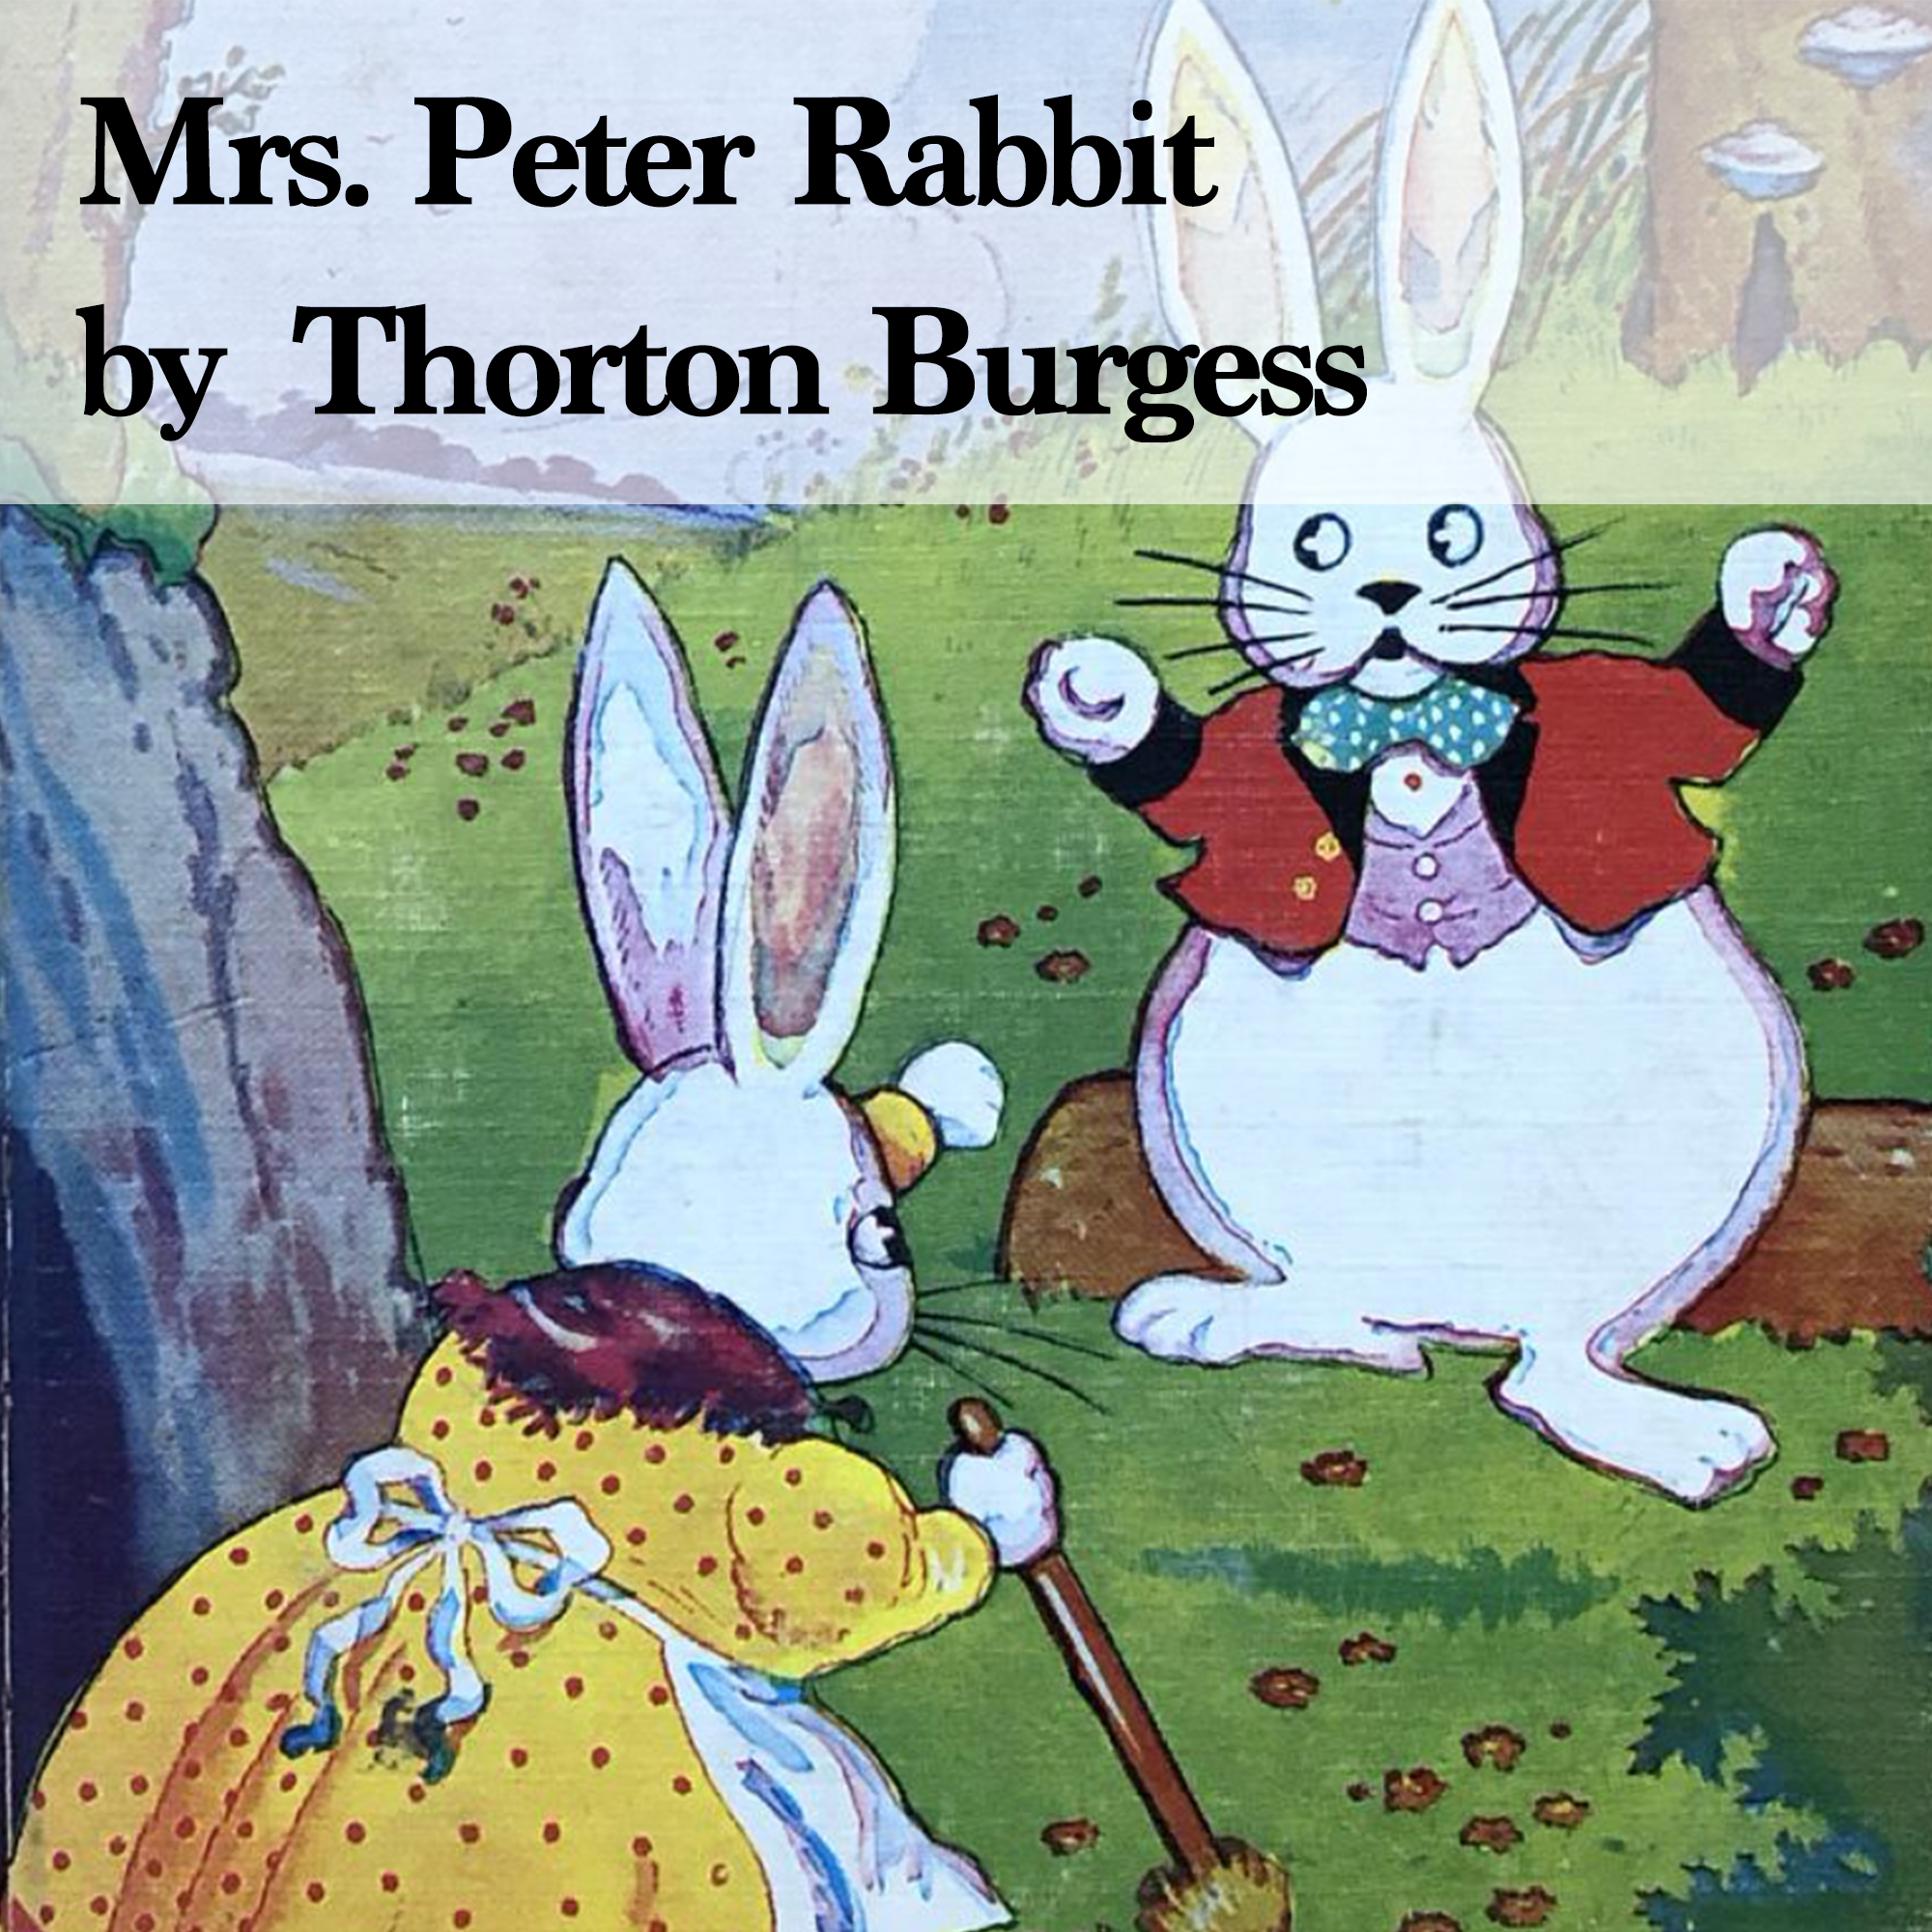 故事朗讀#10:Mrs. Peter Rabbit 第4章 The Shadow With Sharp Claws